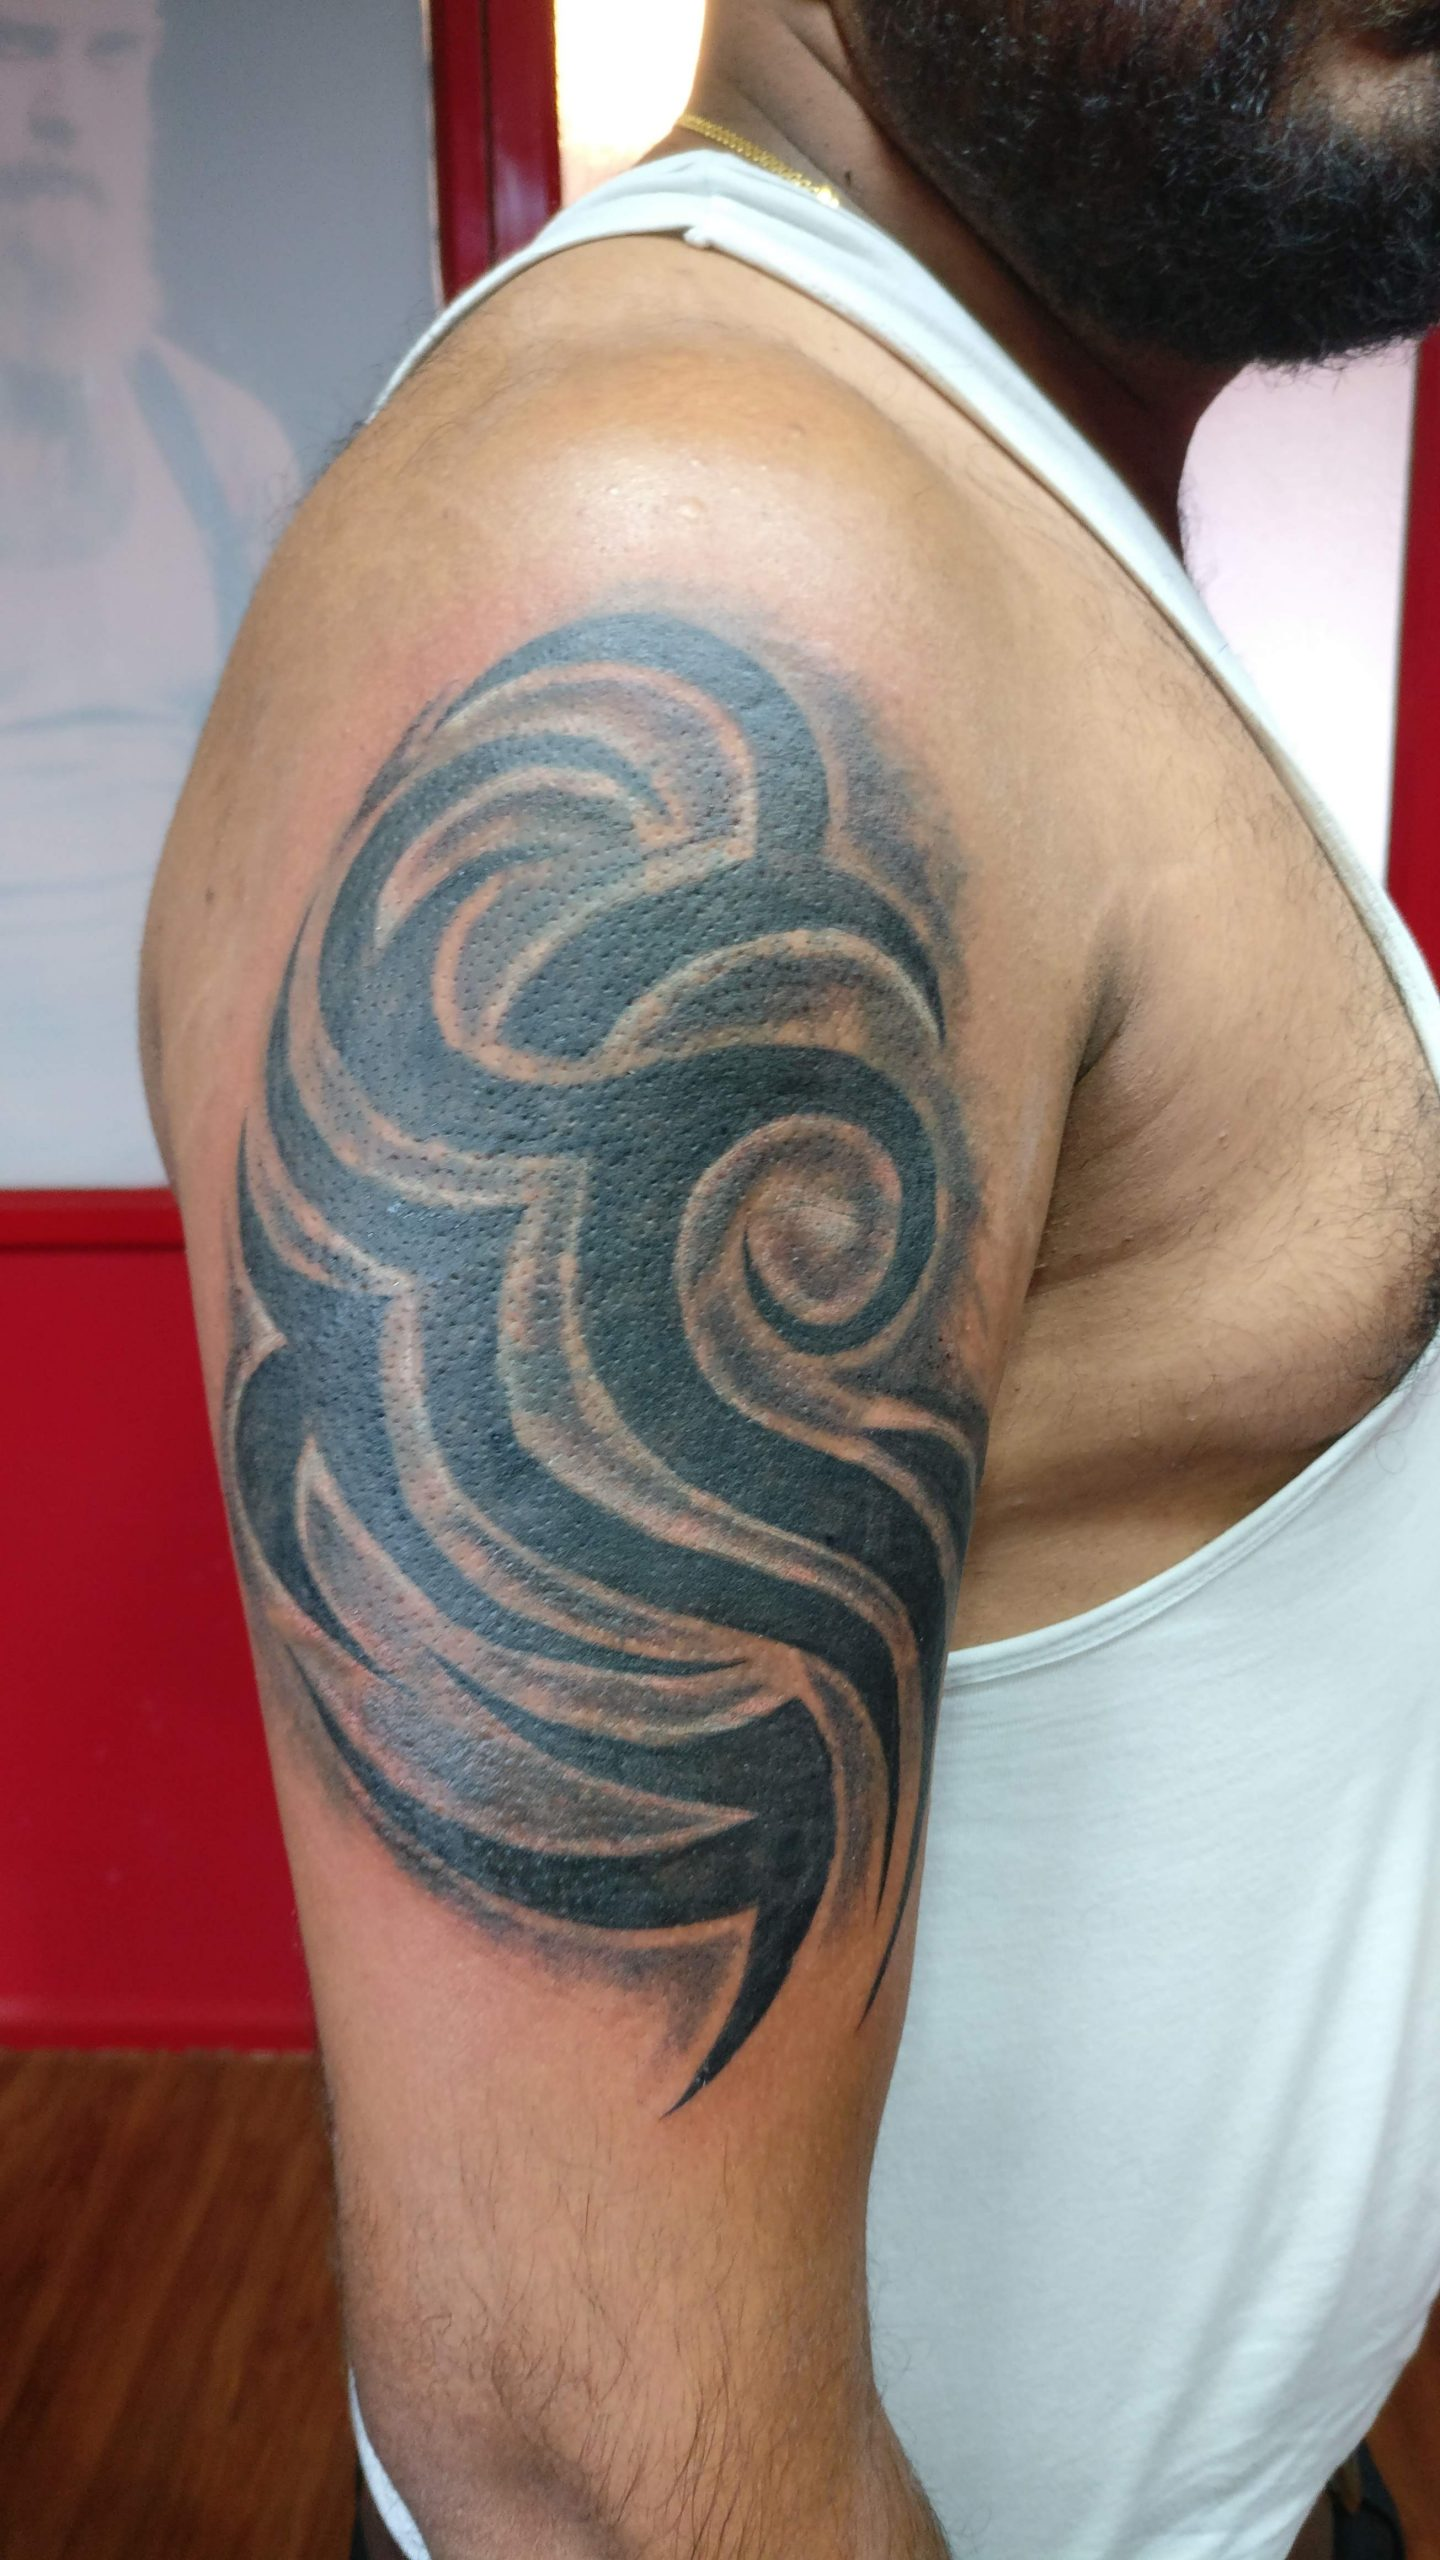 Shoulder Tattoo Designs | Tarazwa Tattoos & Body Piercing